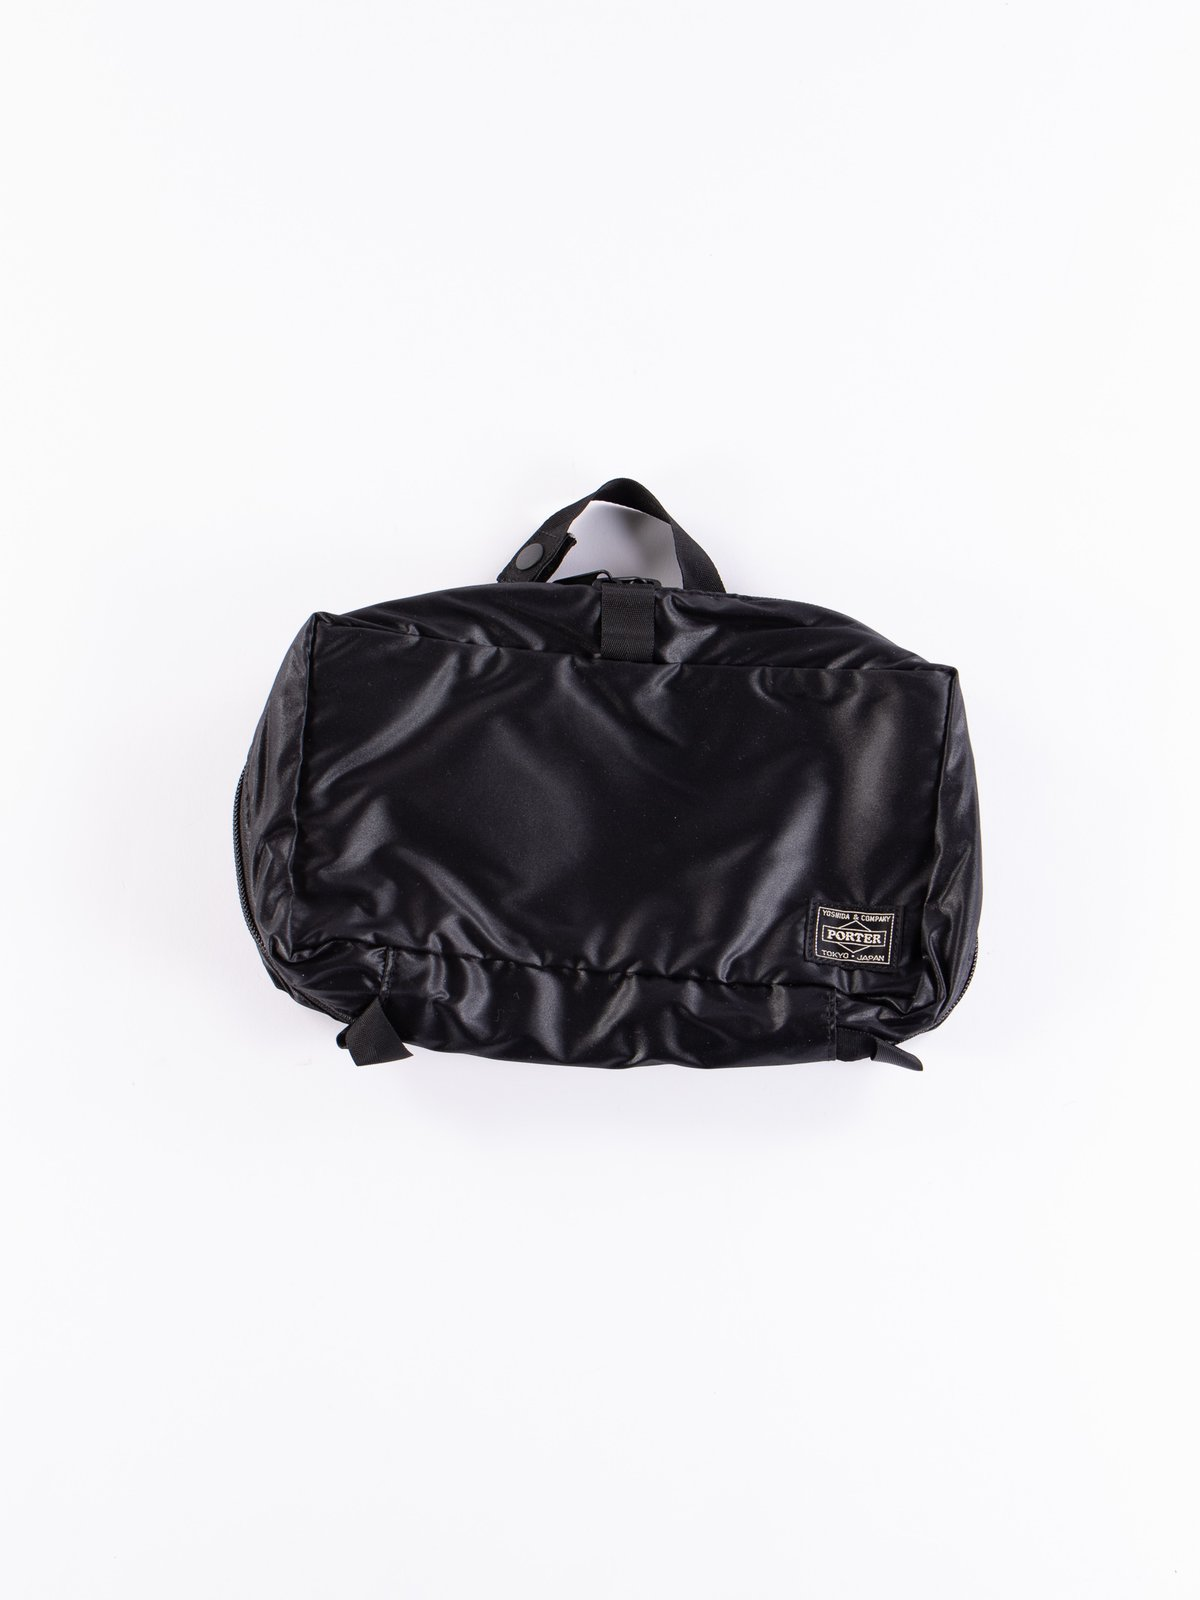 Black Snack Pack 09811 Cosme Pouch - Image 1